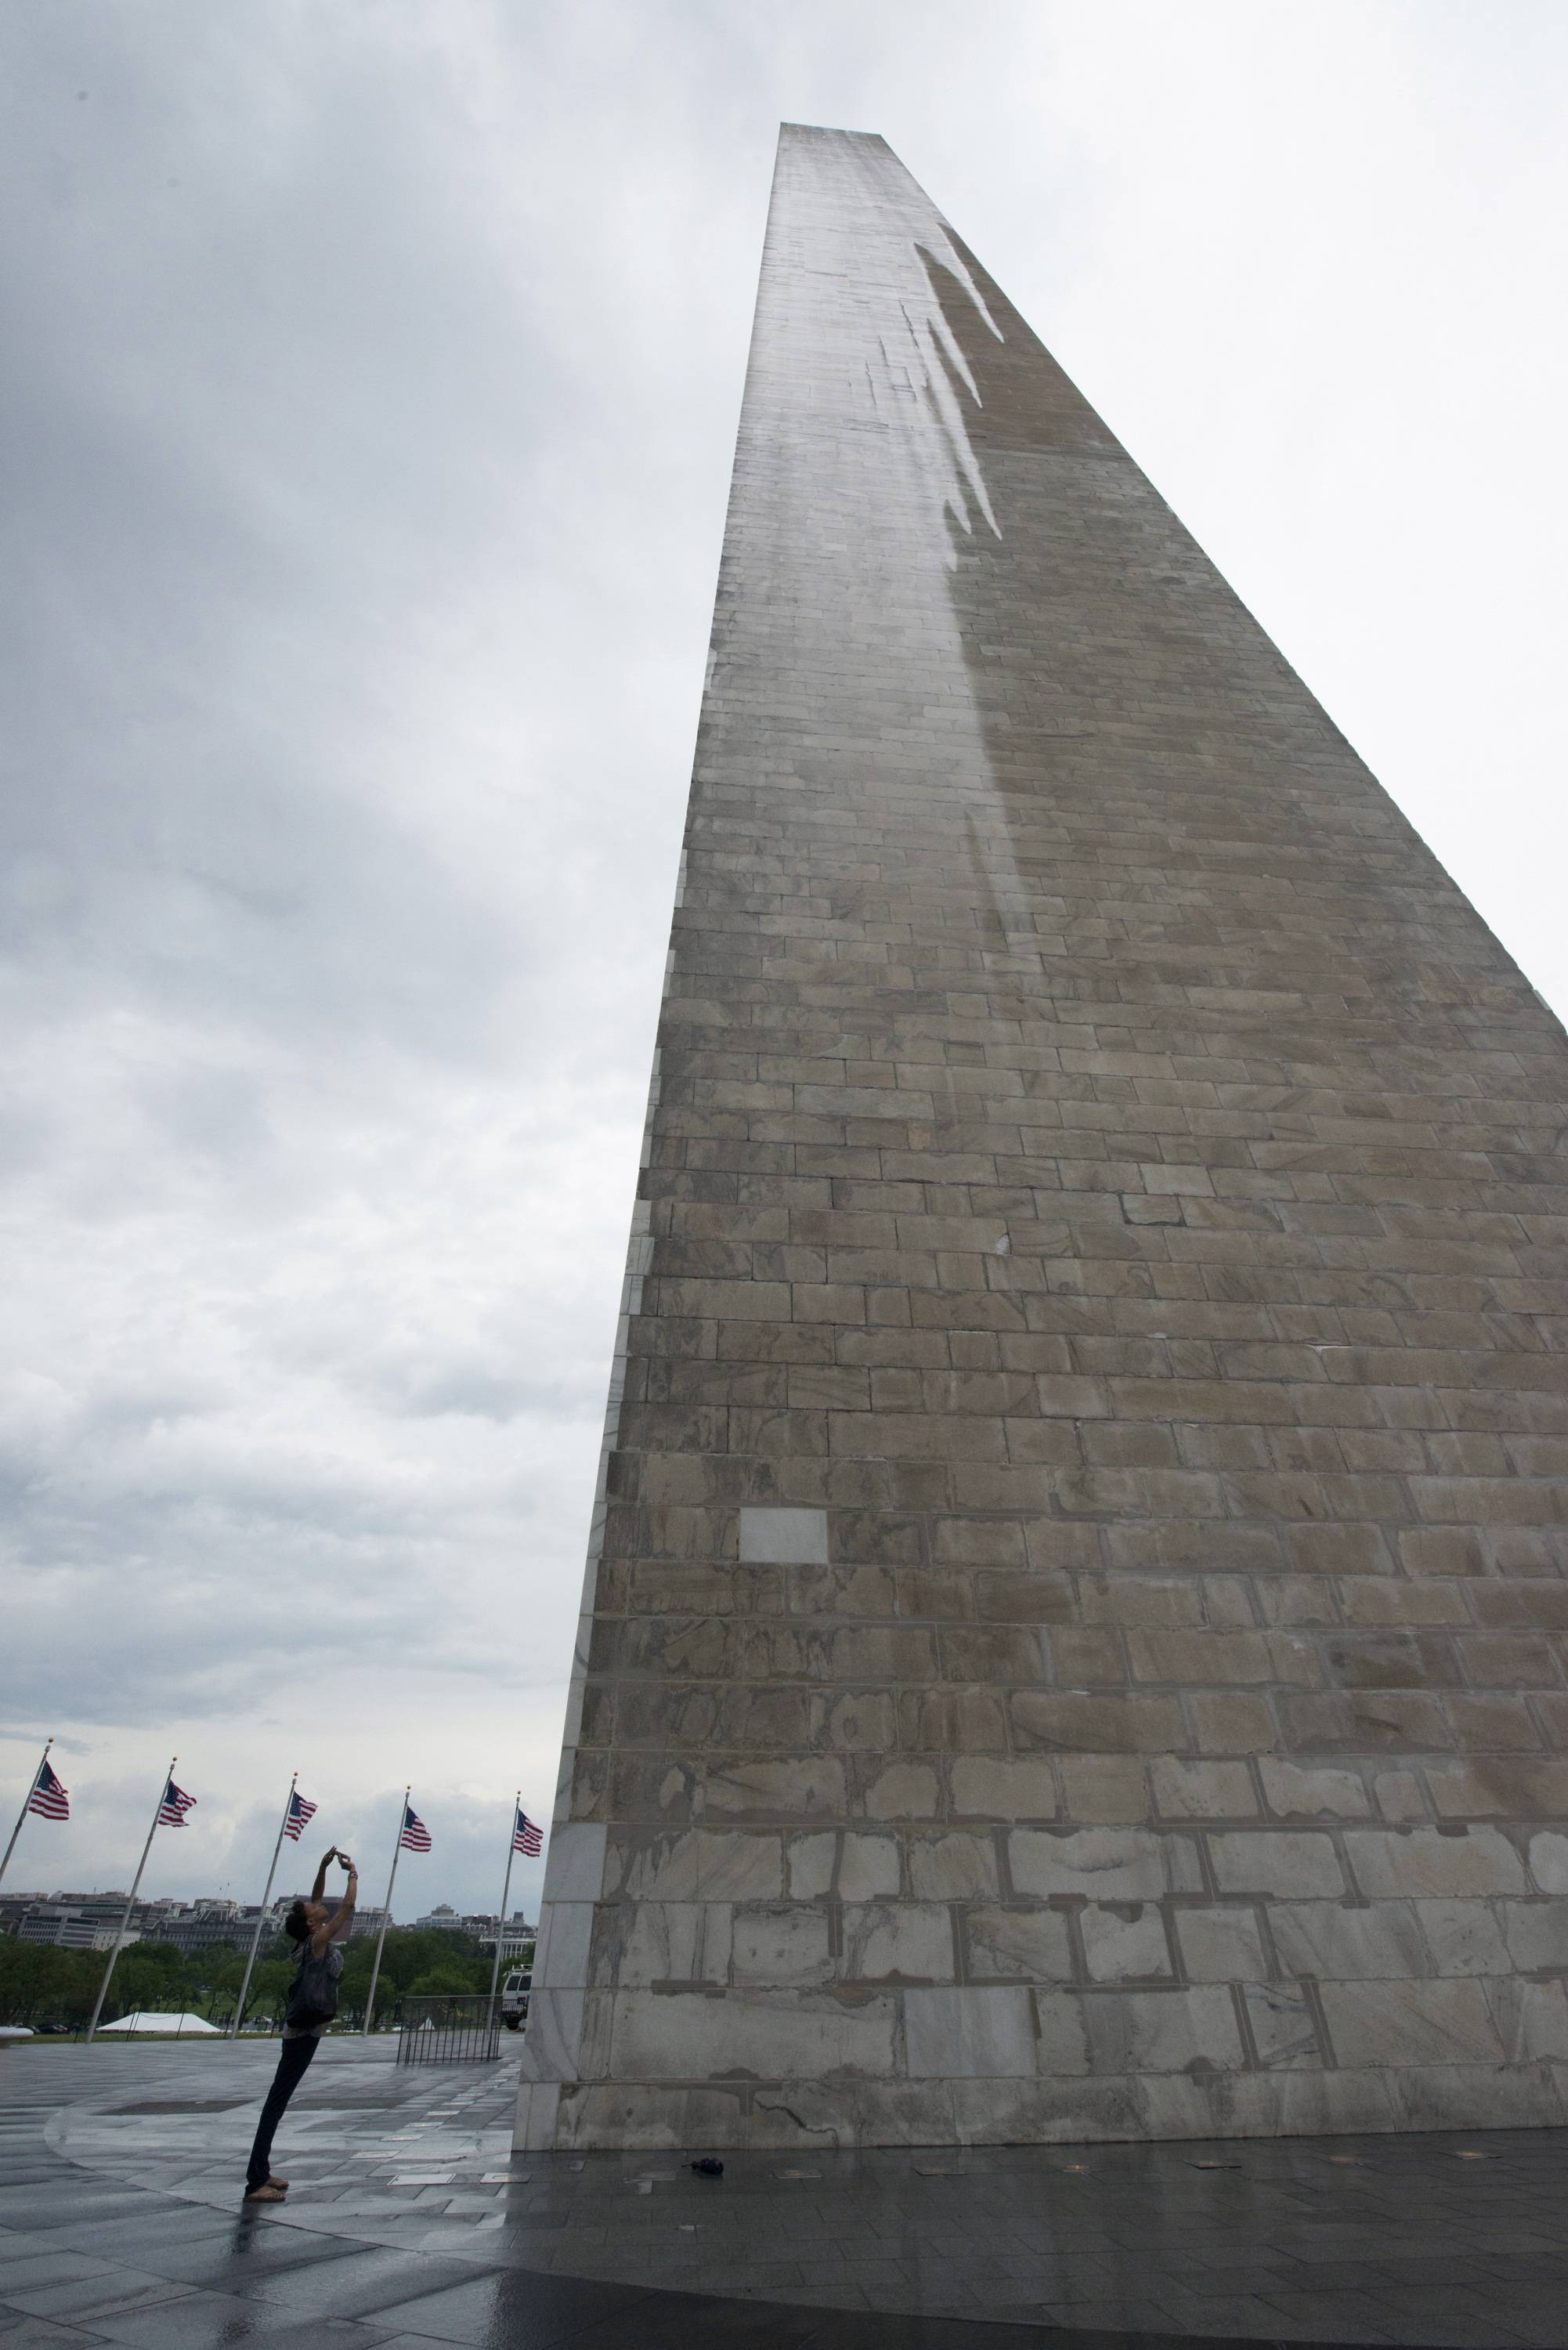 A journalist photographs the Washington Monument during a press preview prior to the re-opening of the monument Saturday.